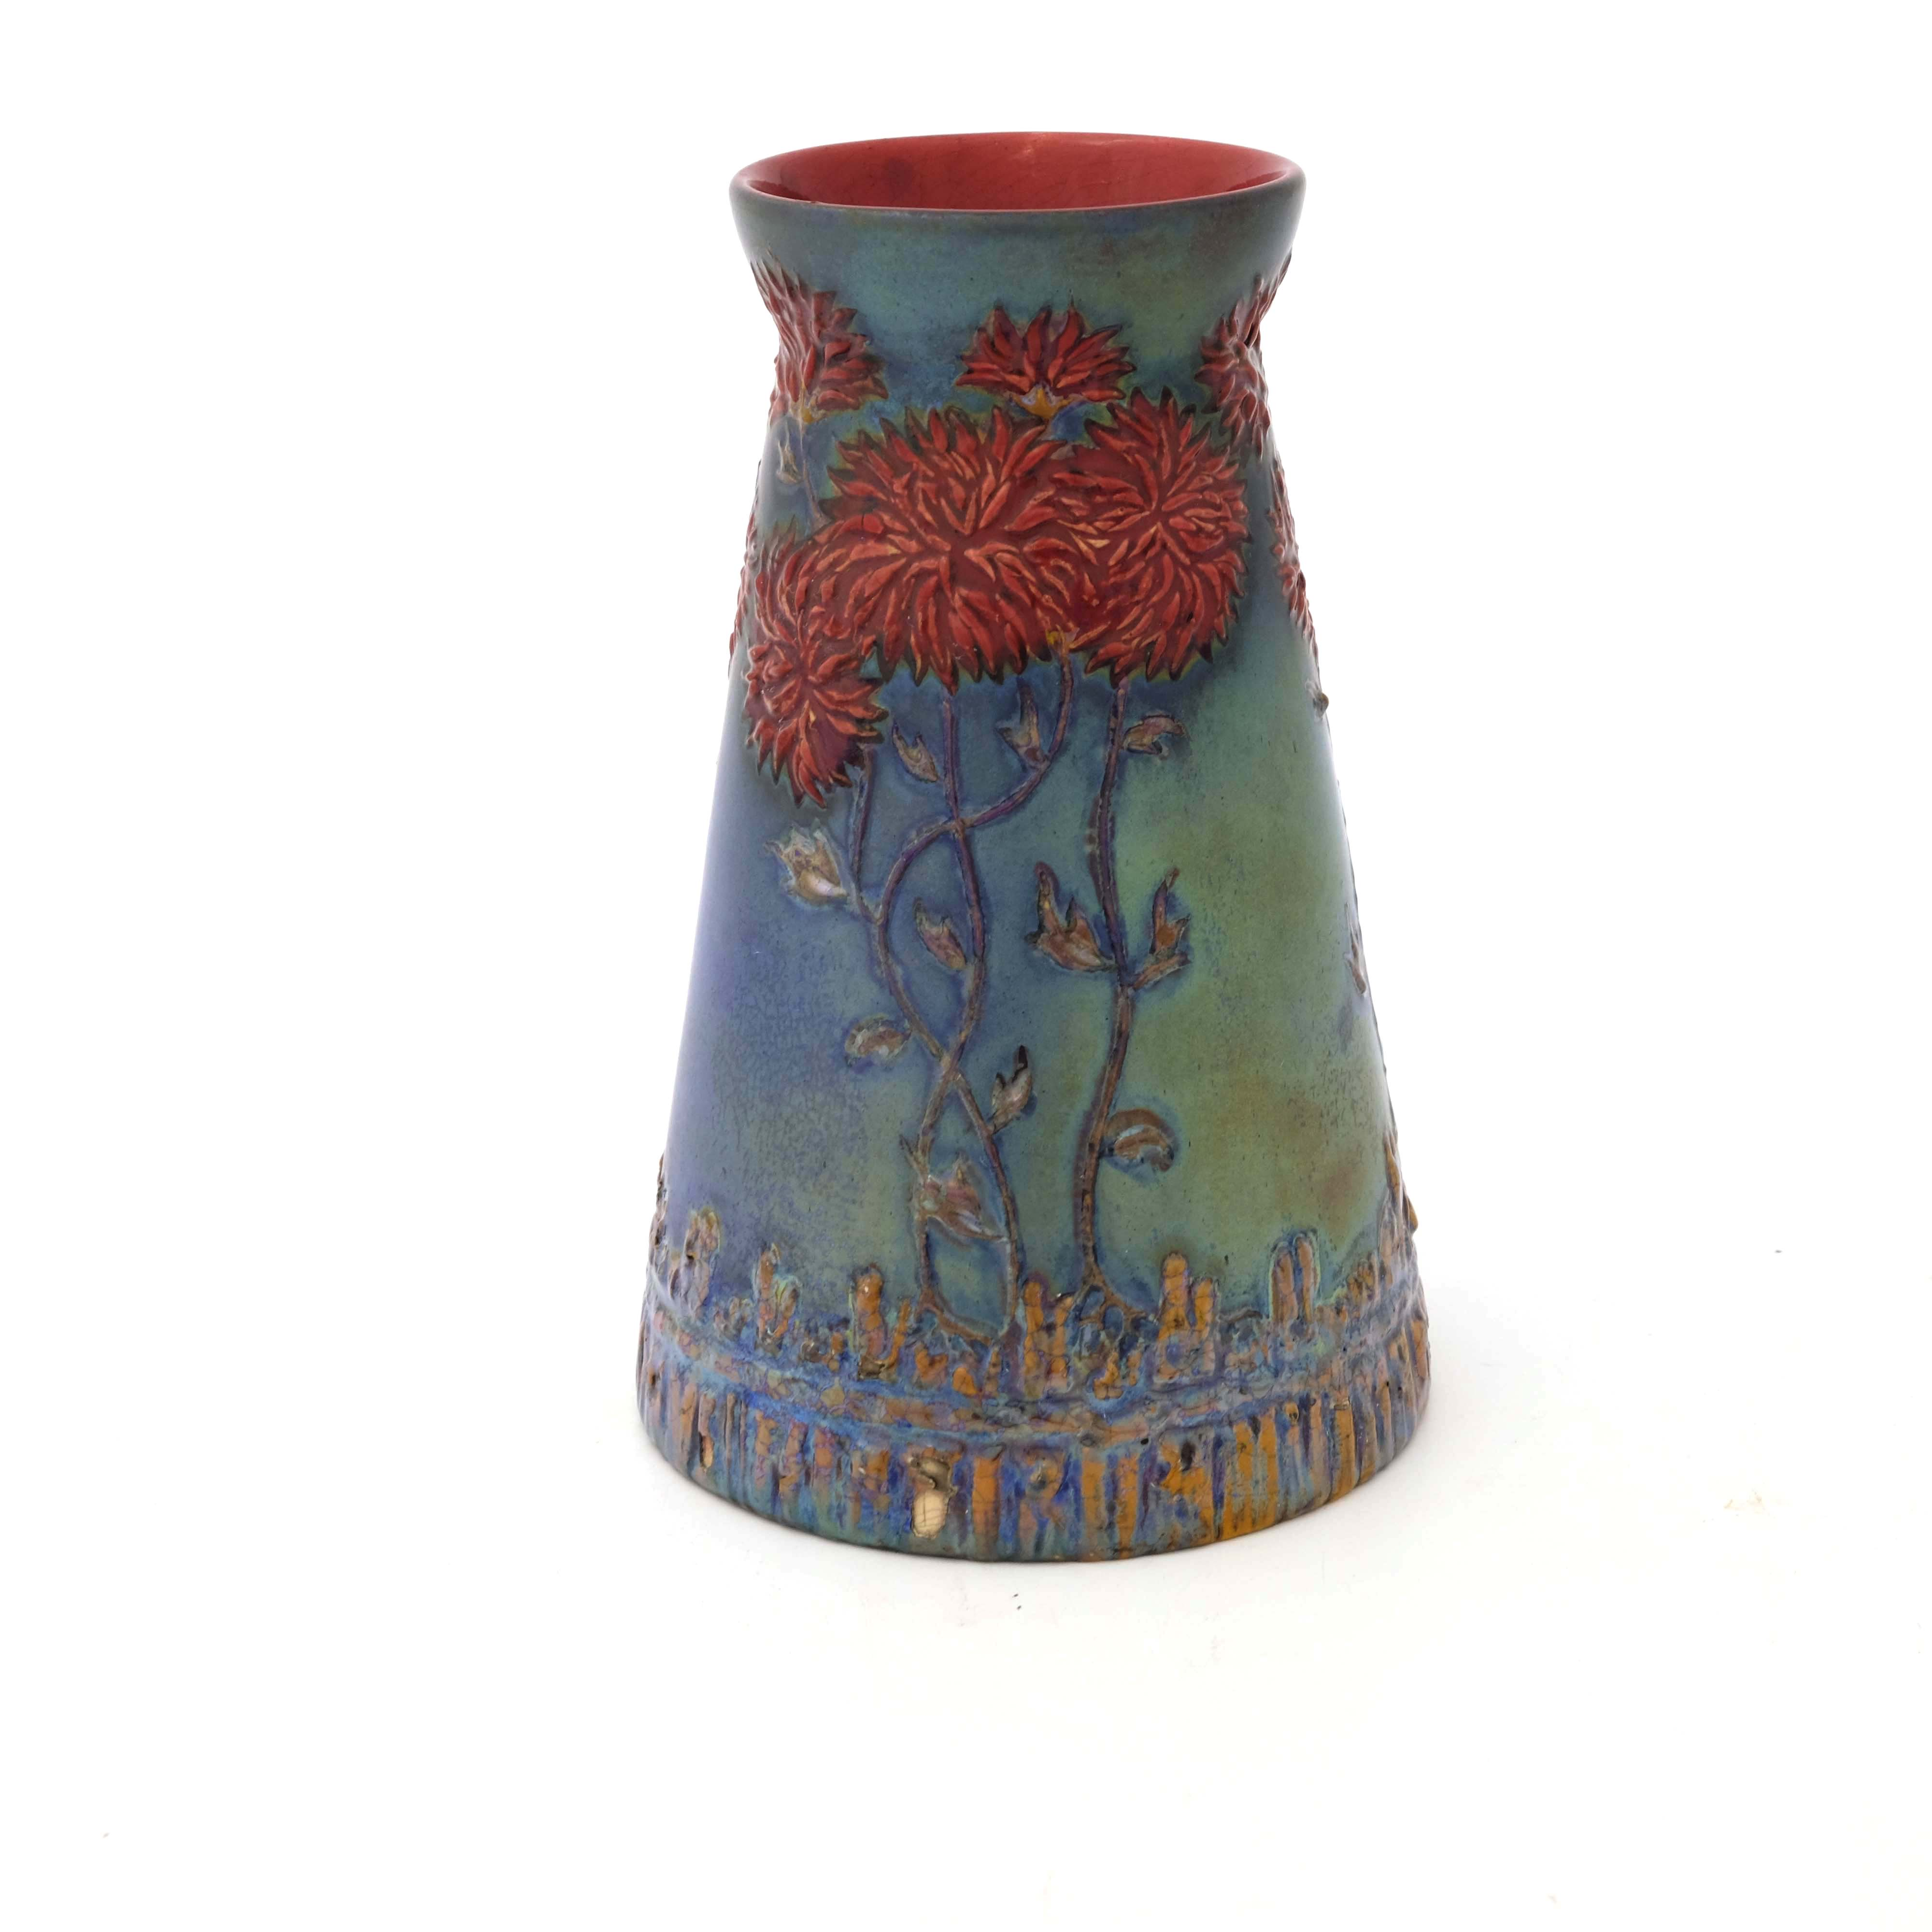 Zsolnay, Pecs, a lustre vase - Image 3 of 6